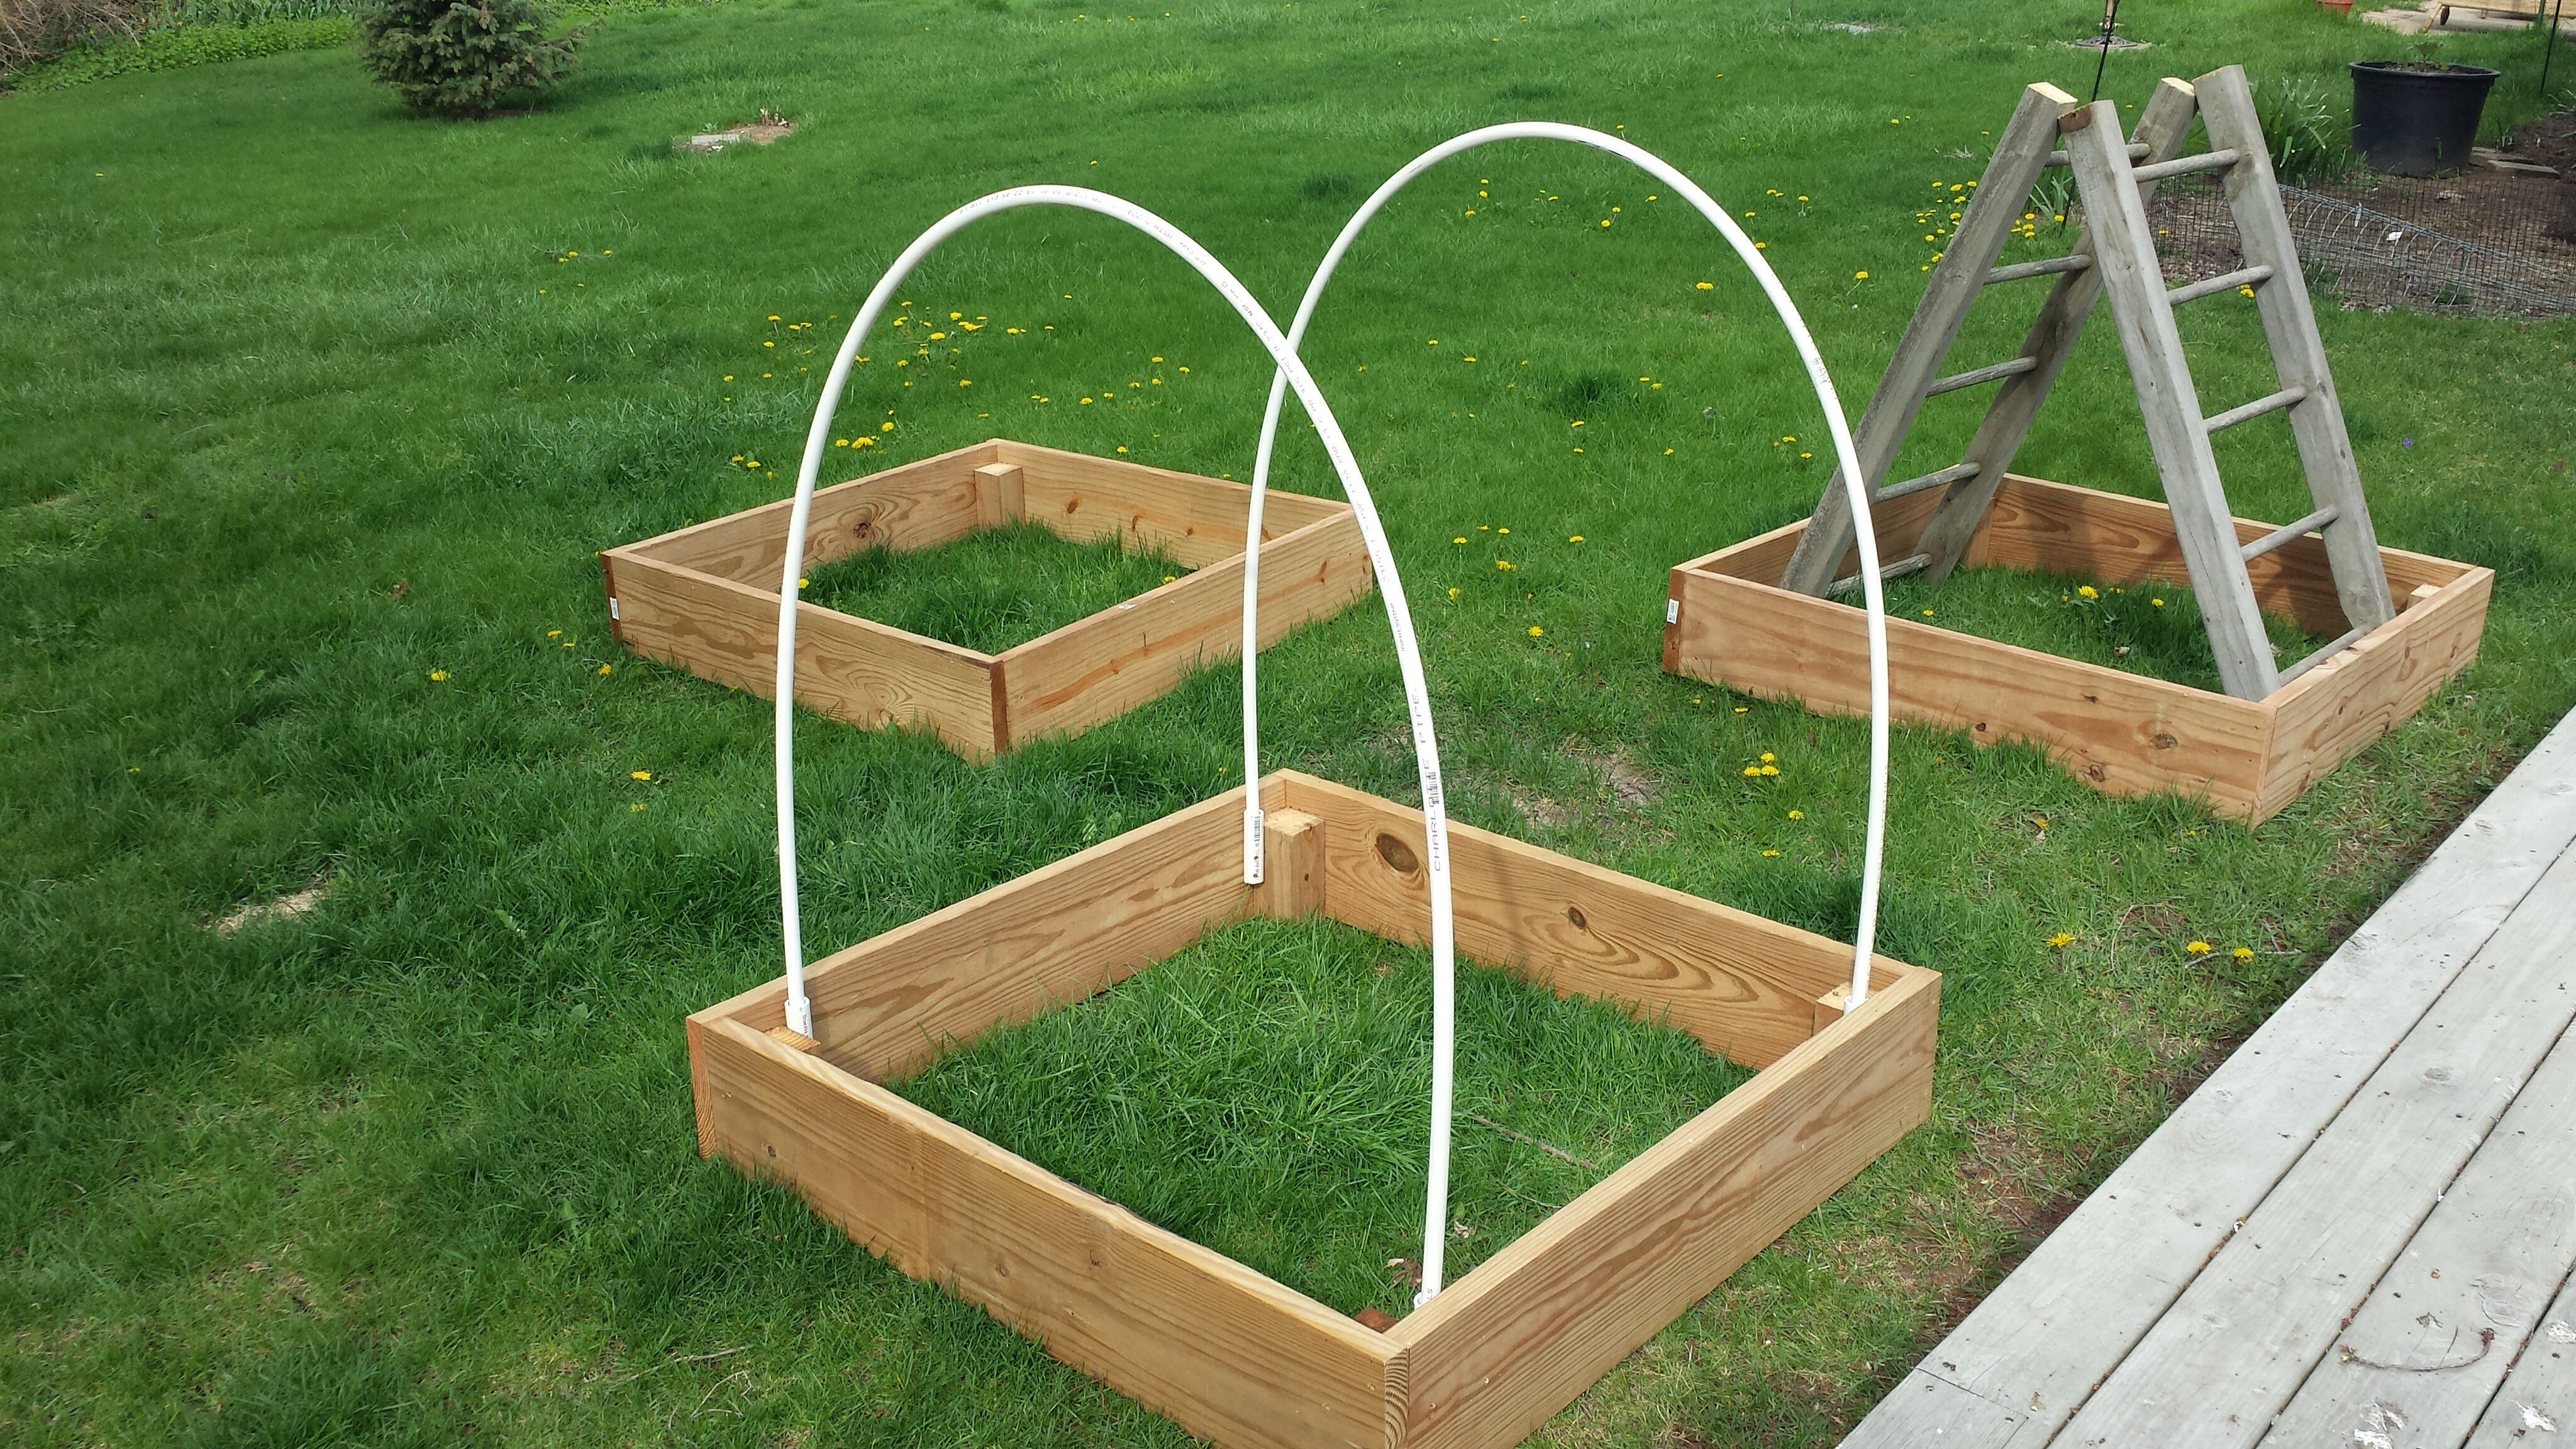 stand bed raised raising garden barrel drums drum and more pin build rain planter barrels